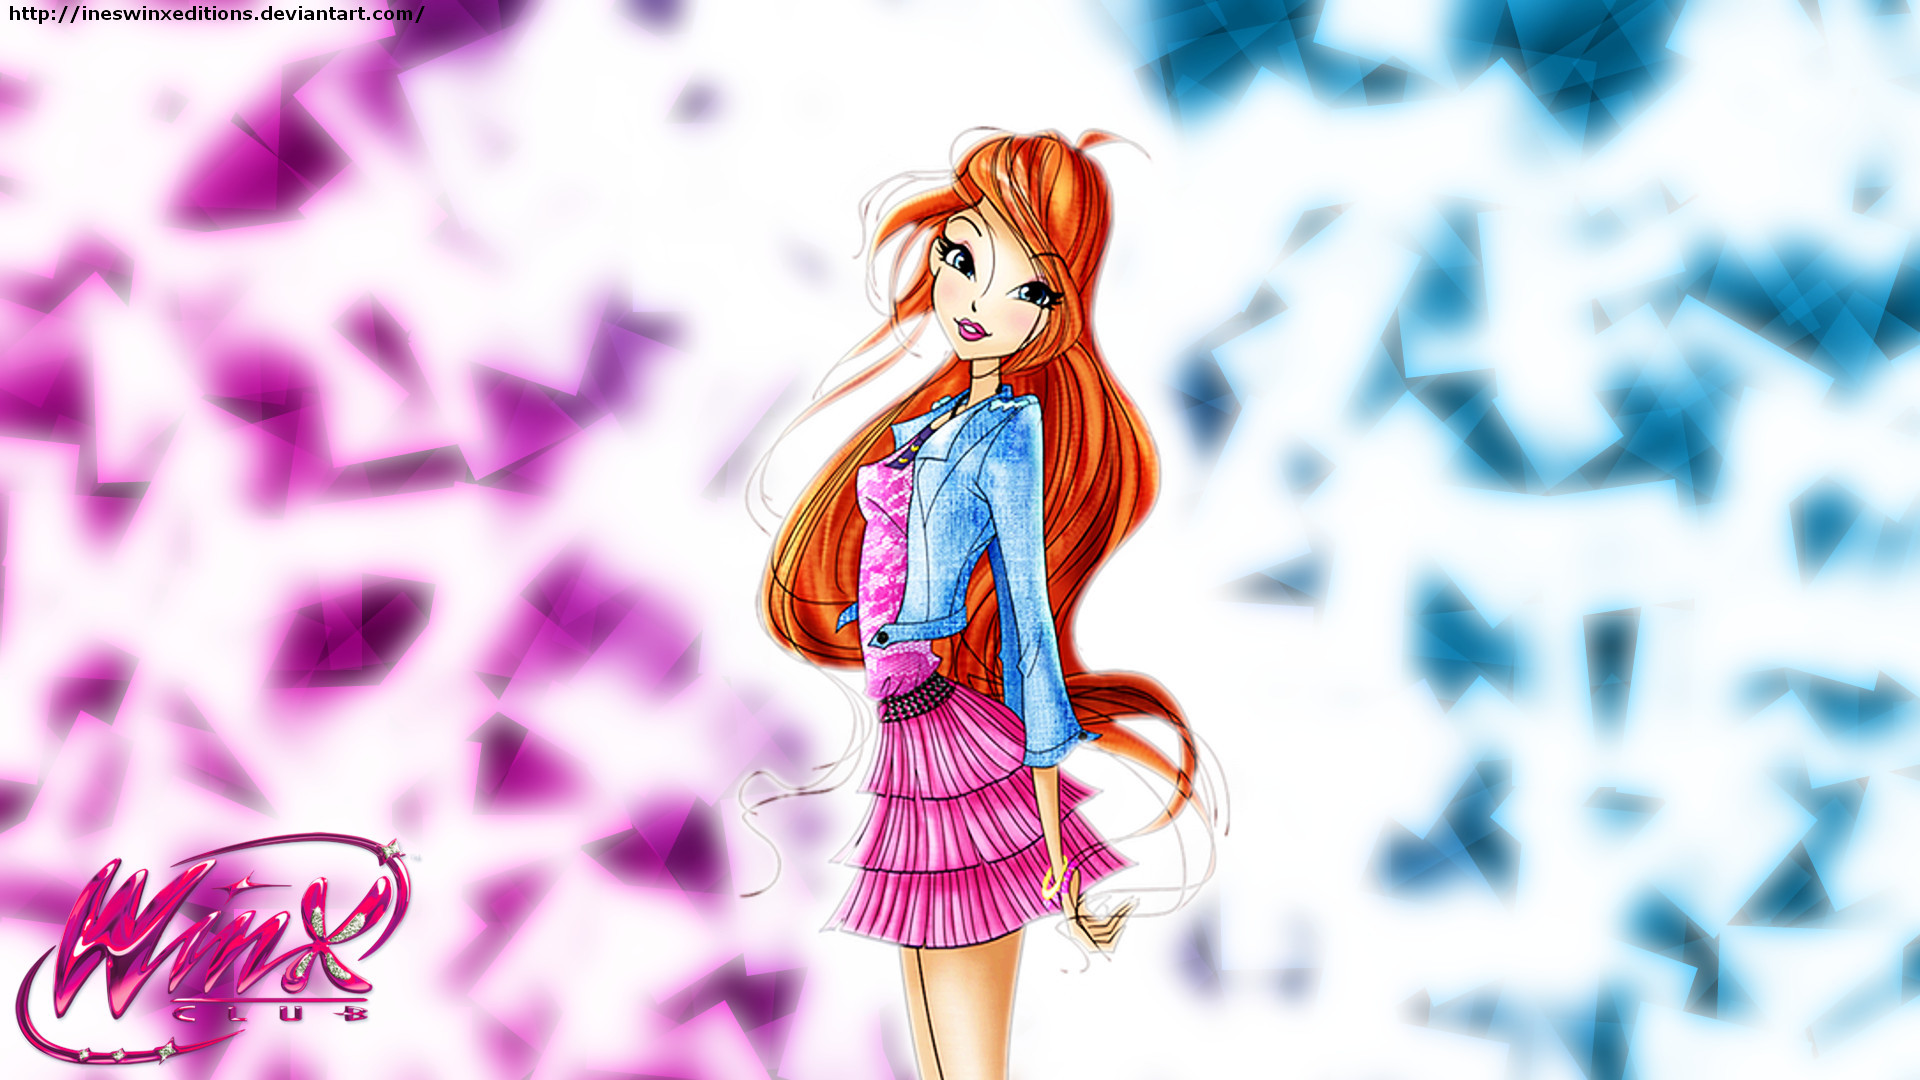 Winx club wallpapers 71 images 1920x1080 winx club bloom wallpapers 41 wallpapers thecheapjerseys Images